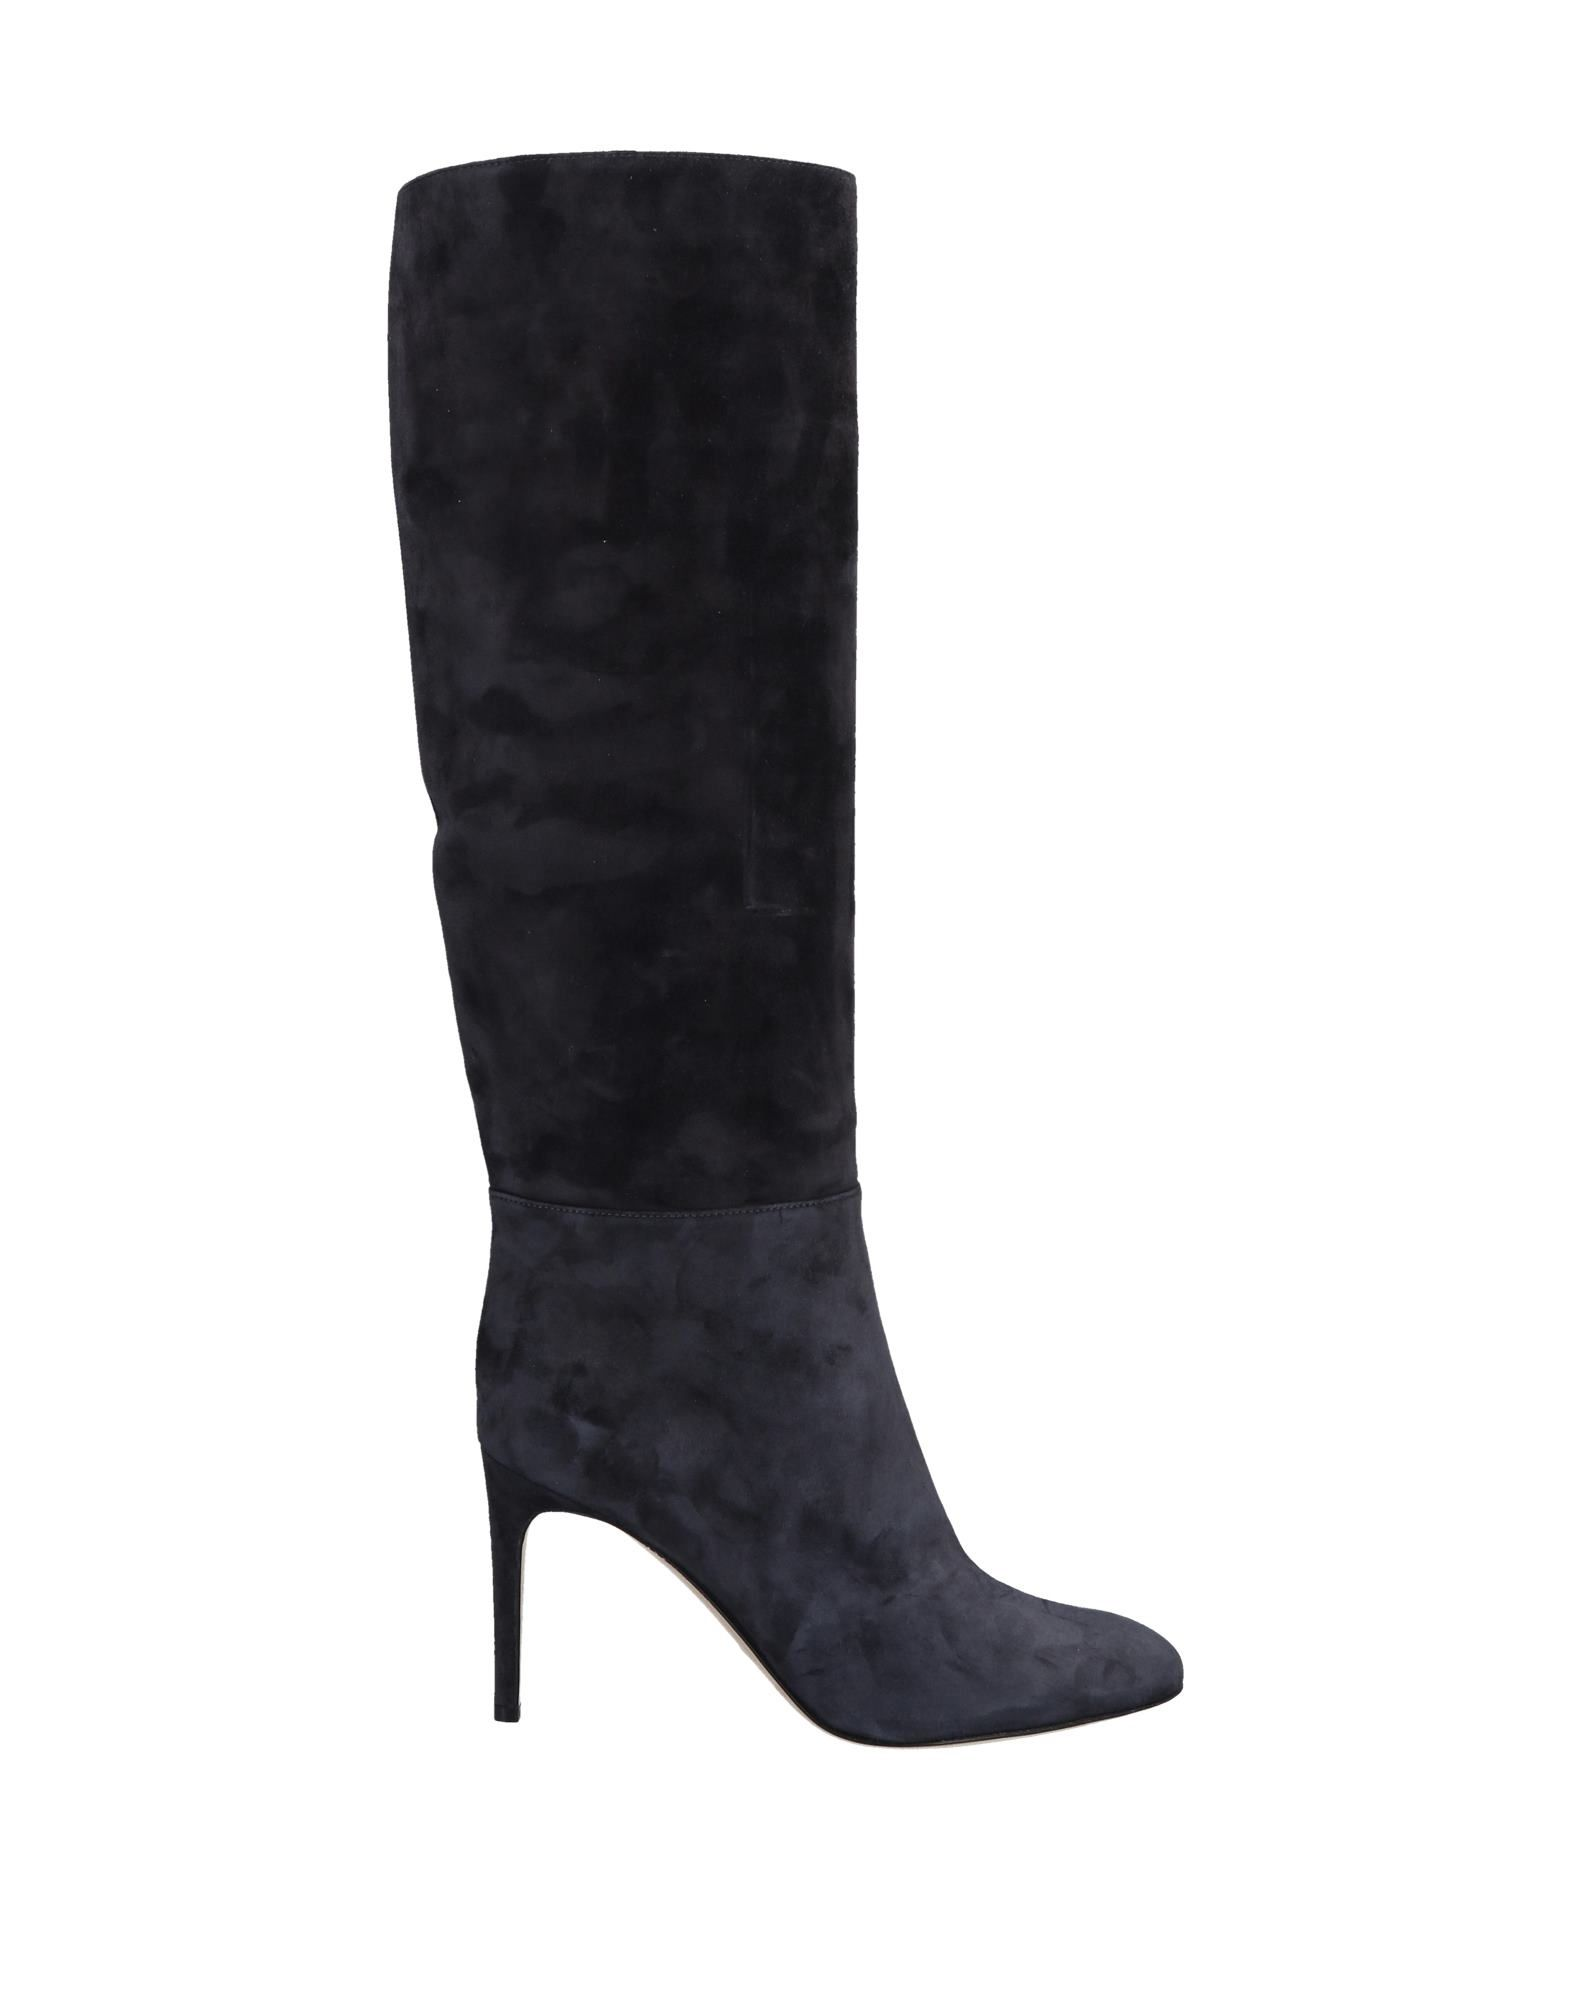 Sergio Rossi Boots Boots - Women Sergio Rossi Boots Boots online on  United Kingdom - 11456287RH 87914b